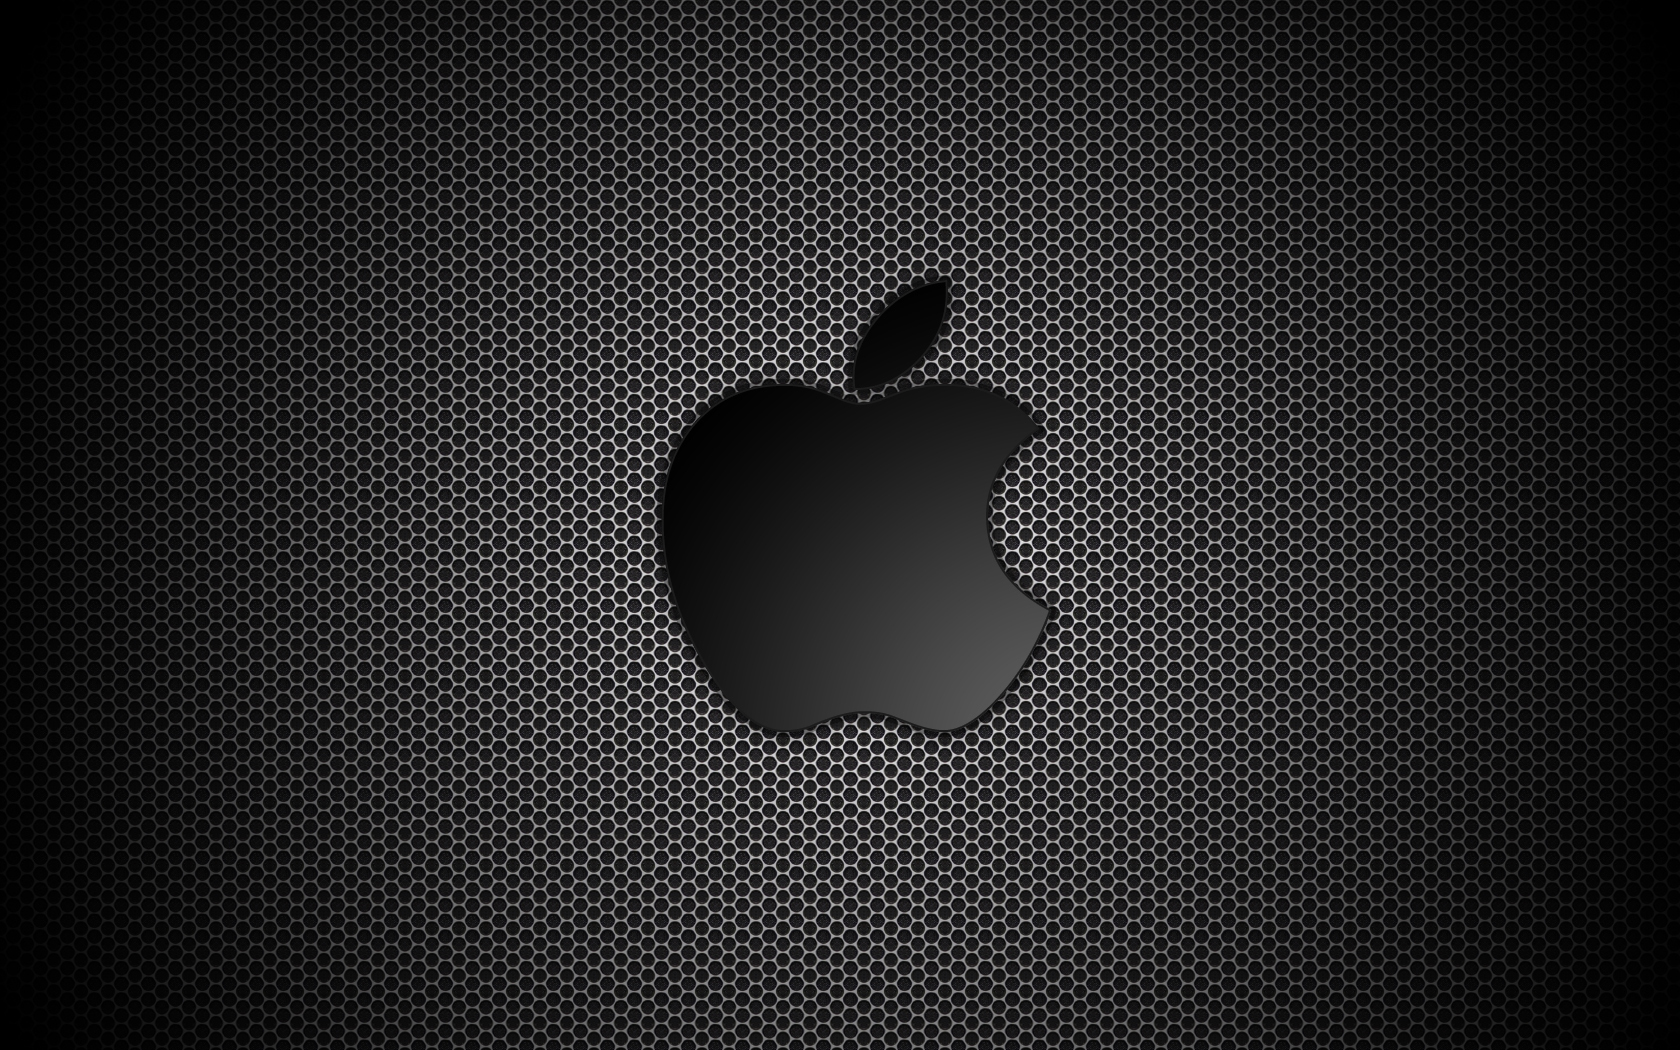 Mac Os The Colour Black Wallpaper 22238912 Fanpop